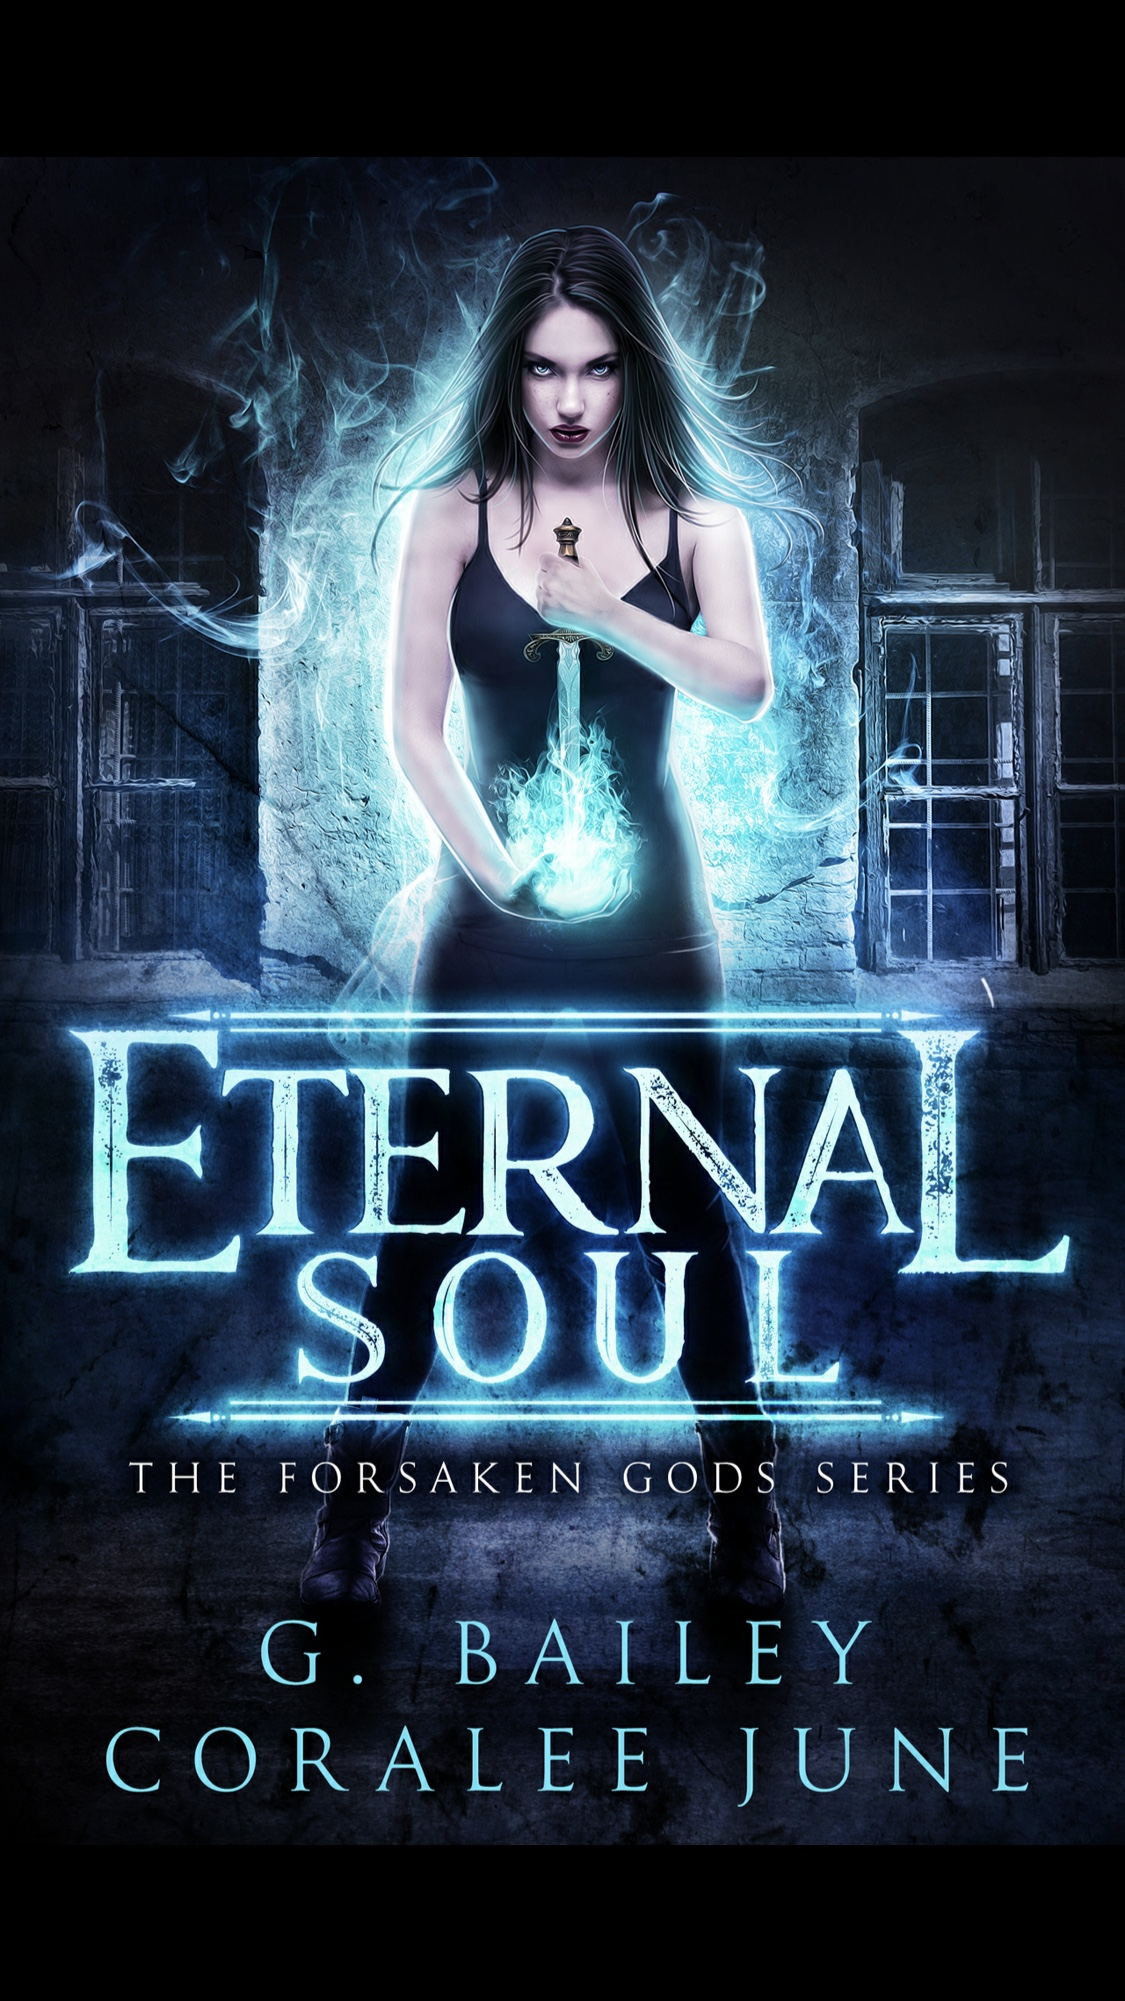 Eternal Soul by G. Bailey and Coralee June – Book Review